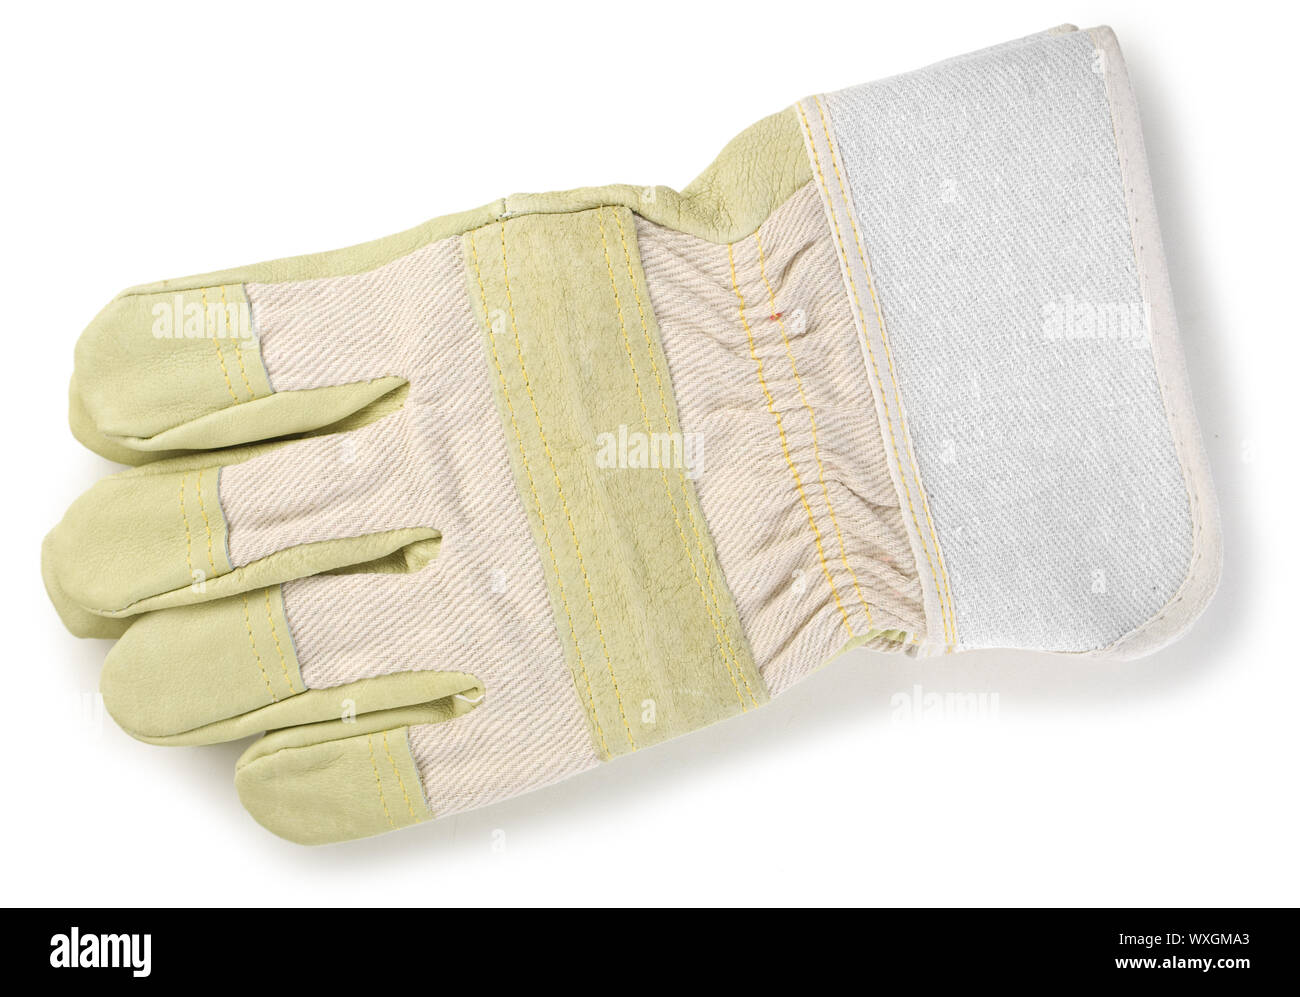 industrial glove Stock Photo